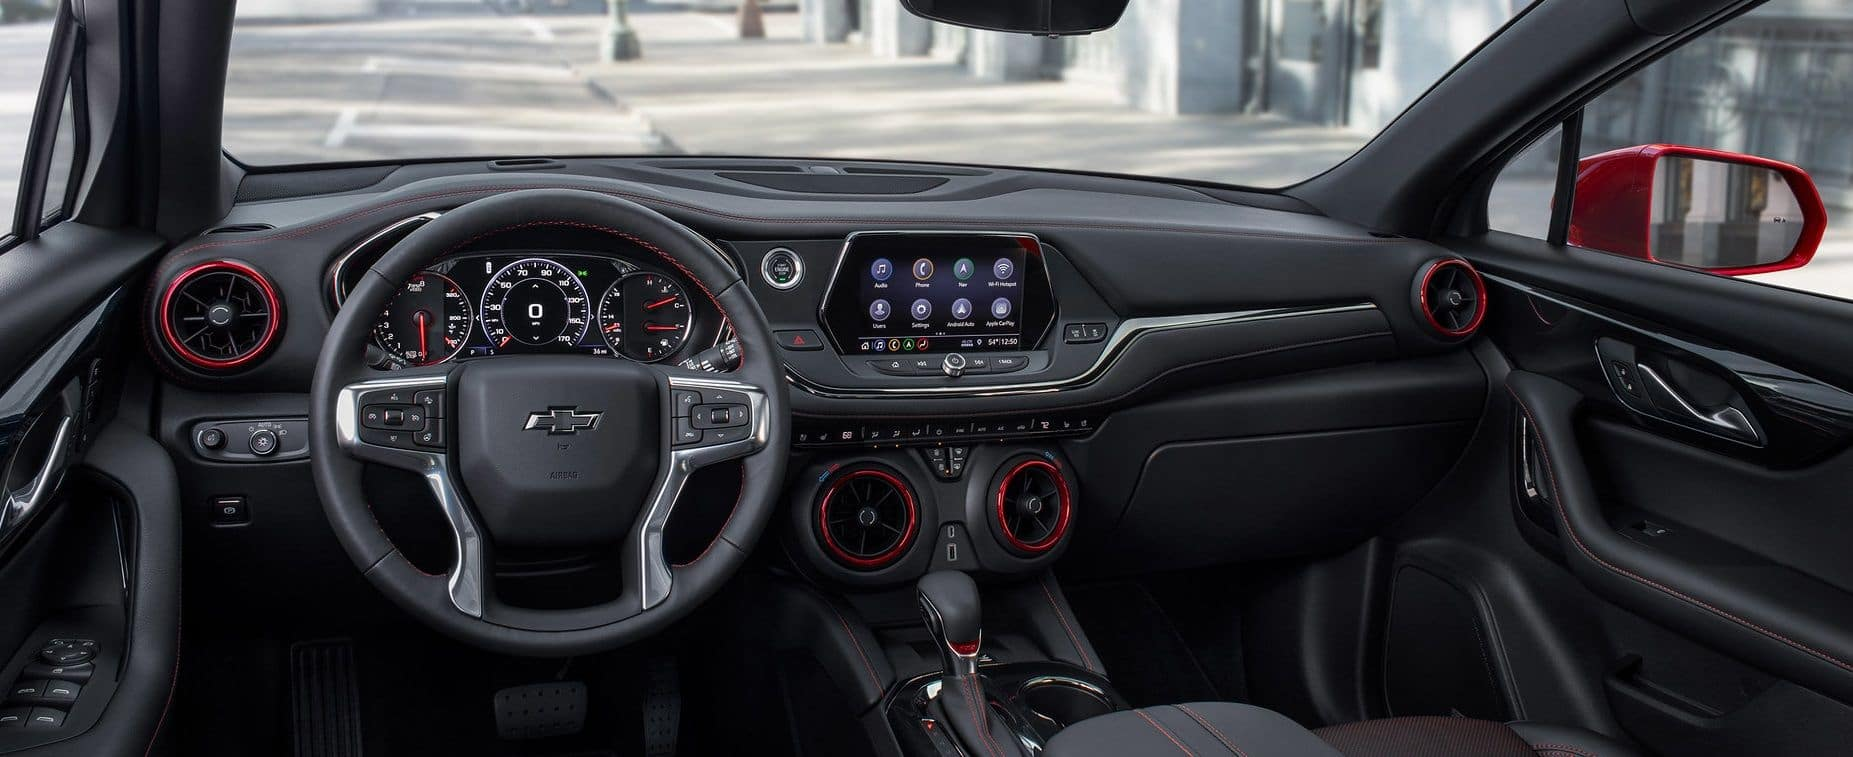 2019 Chevy Blazer RS Interior | Okarche, OK